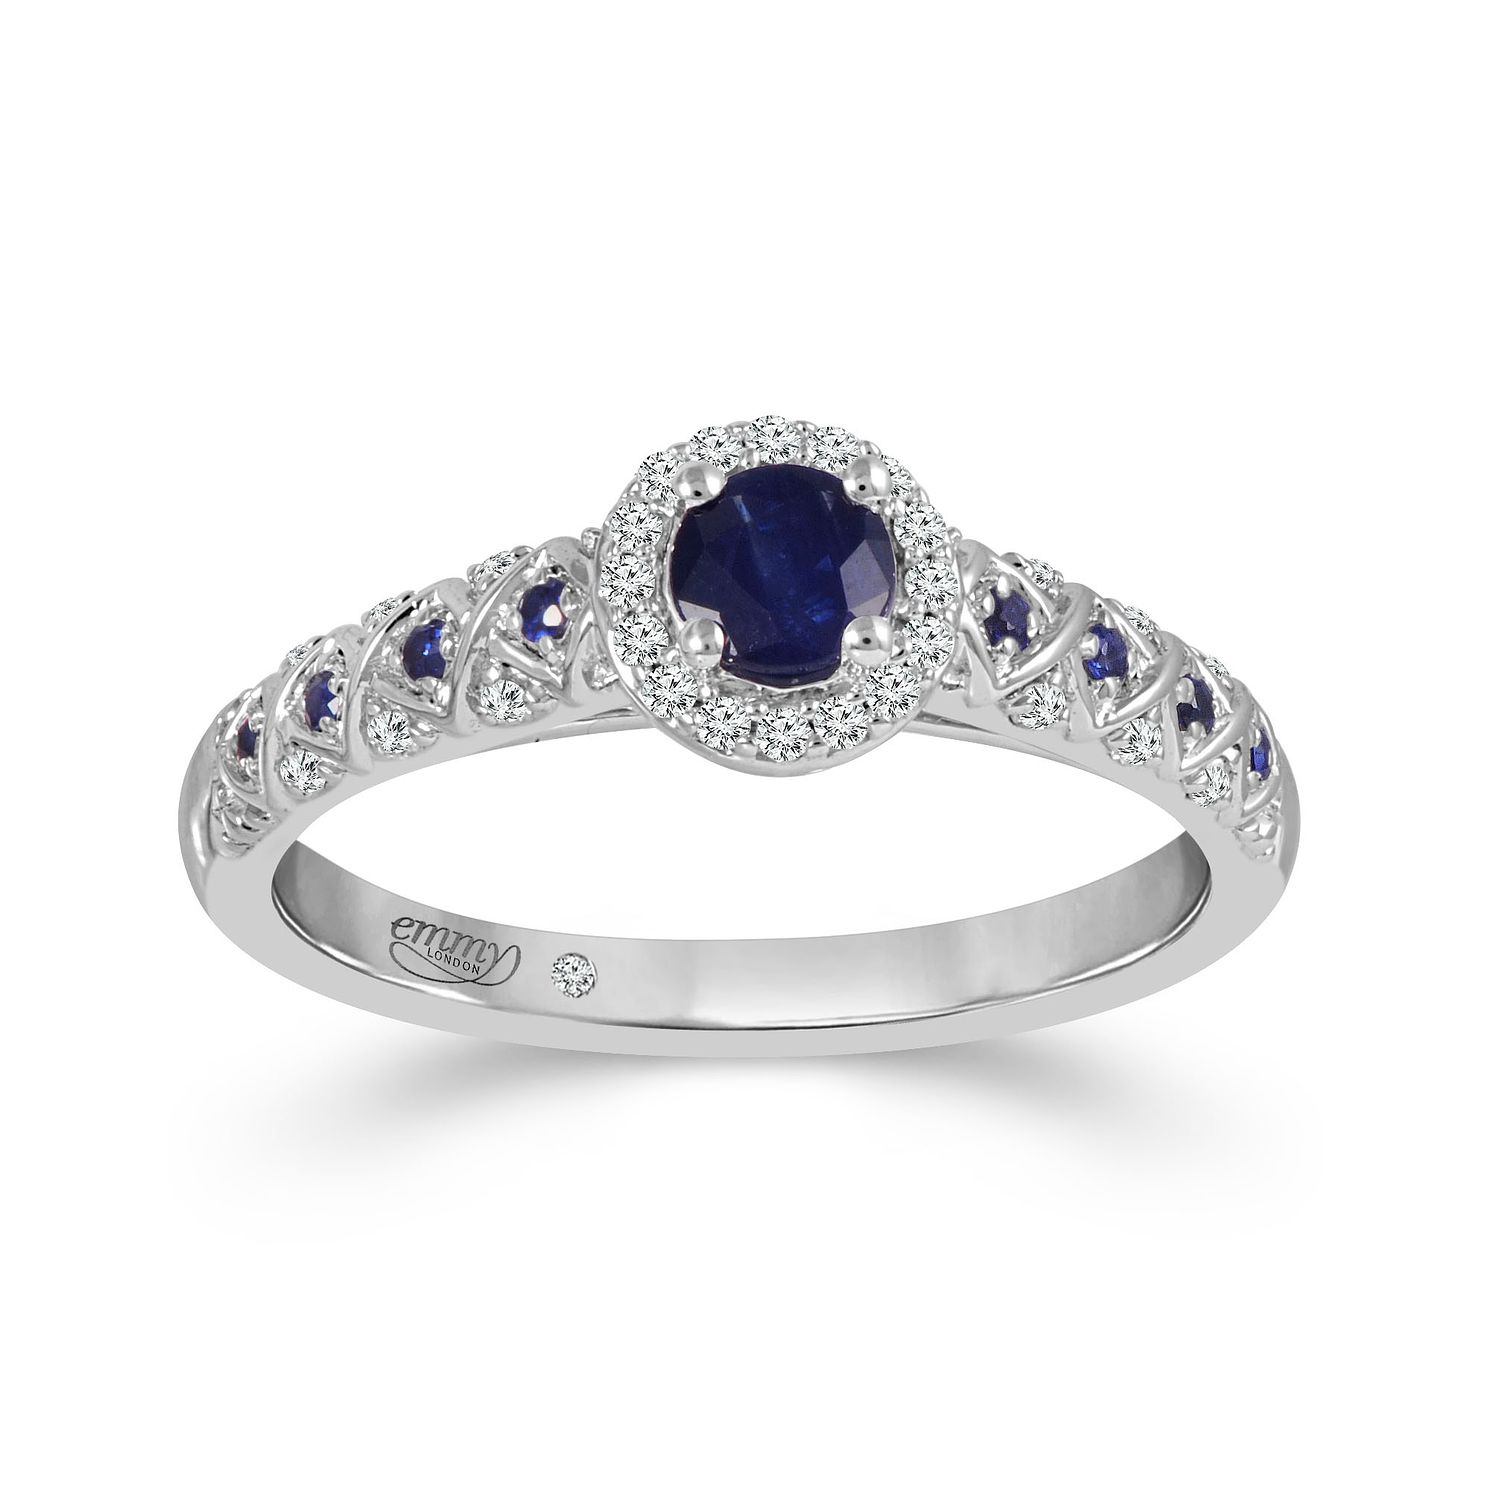 Emmy London 18ct White Gold Sapphire 0.08ct Diamond Ring - Product number 9532536